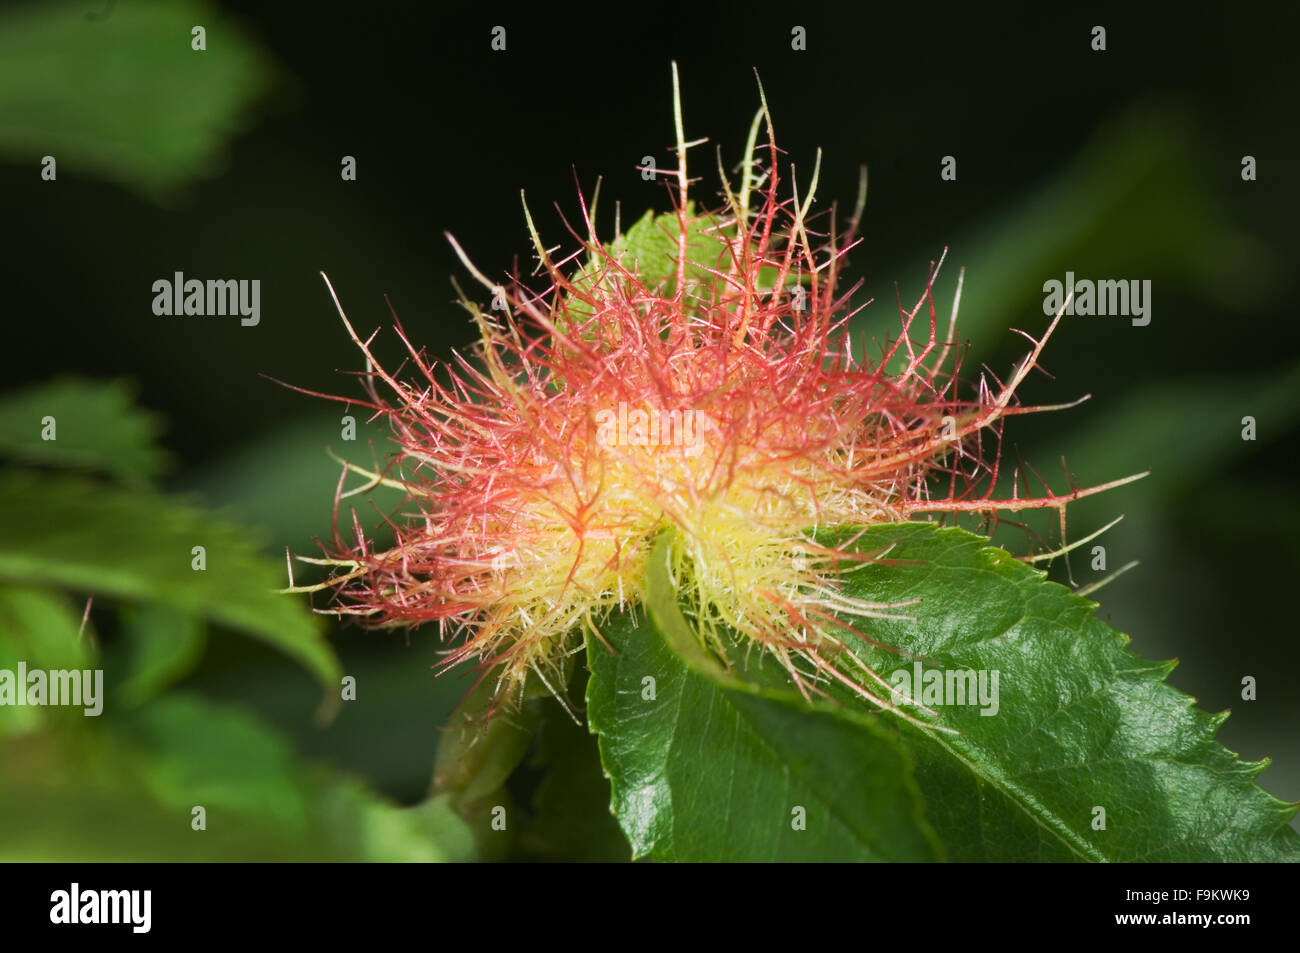 Closeup of a rose gall wasp on a rose plant. Limited-anomaly caused by infection by viruses, bacteria, fungi or - Stock Image